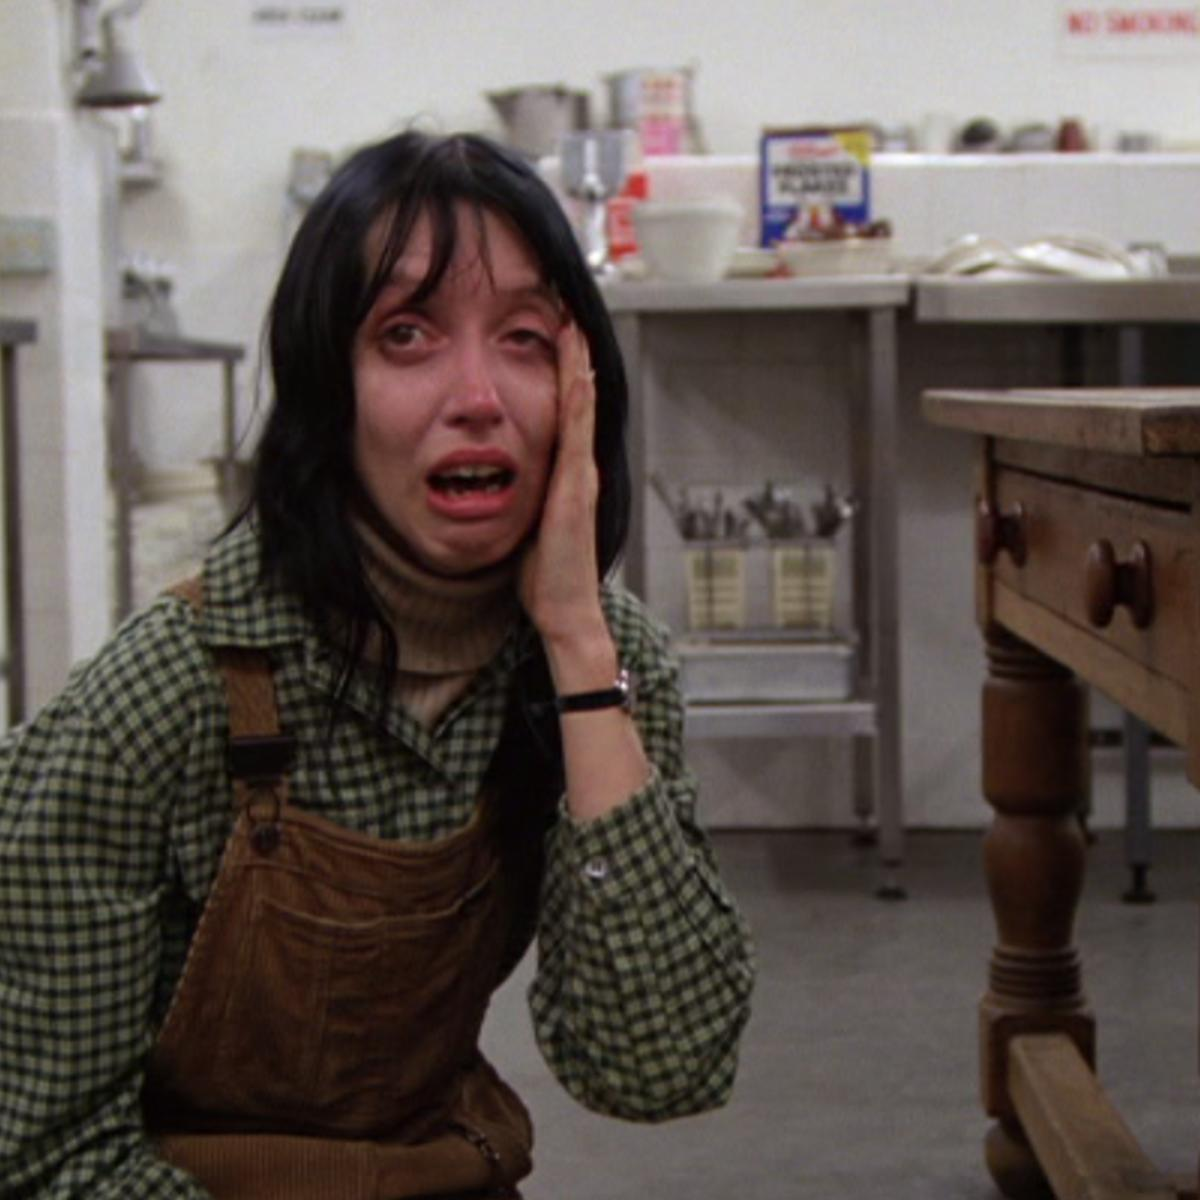 the-shining-movie-shelley-duvall-wendy-torrance.png